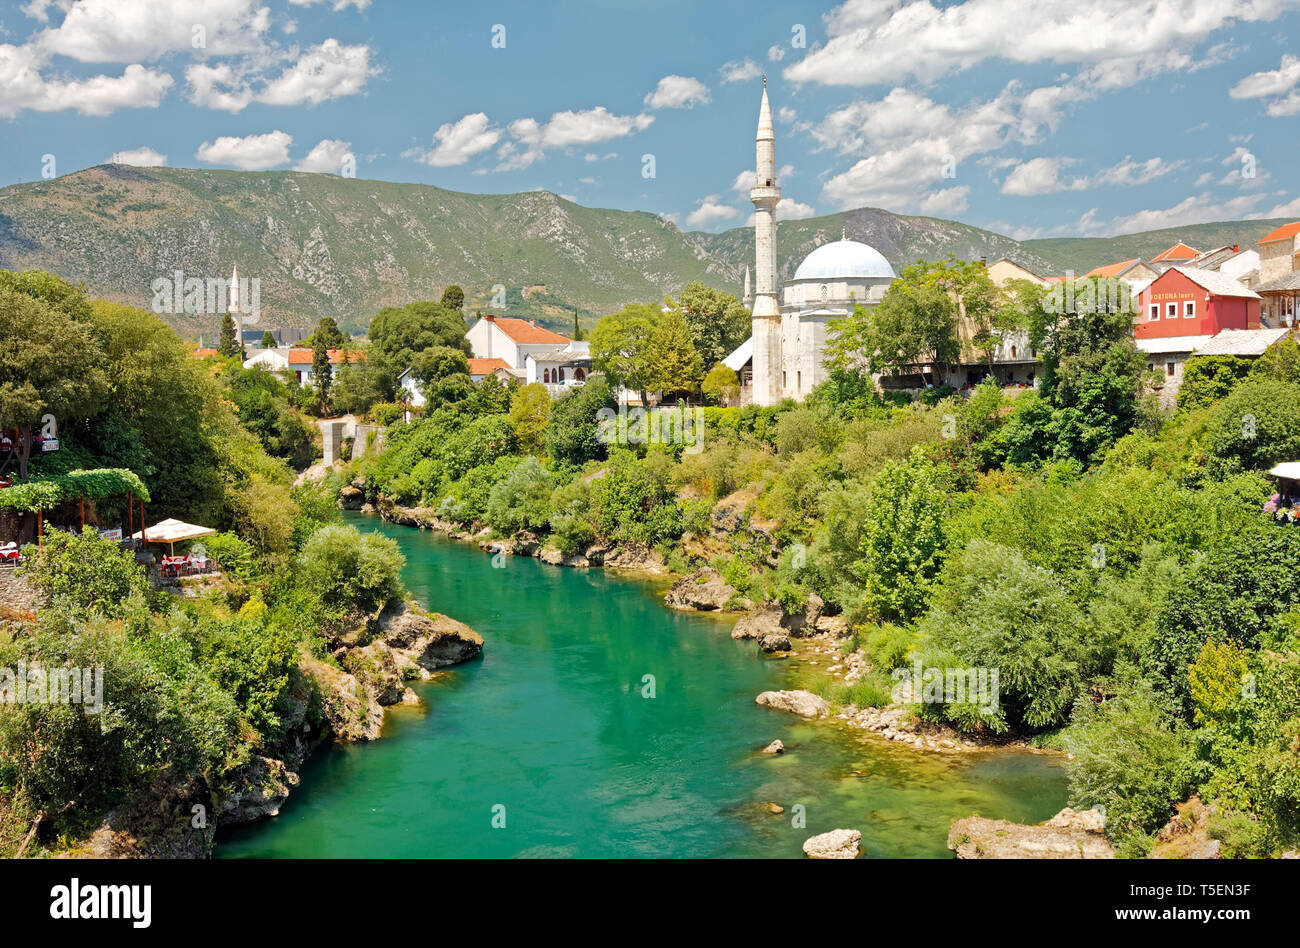 Neretva River overview; buildings, mosques, hillside, water, Mostar; Bosnia Herzegovina; Europe; summer, horizontal - Stock Image